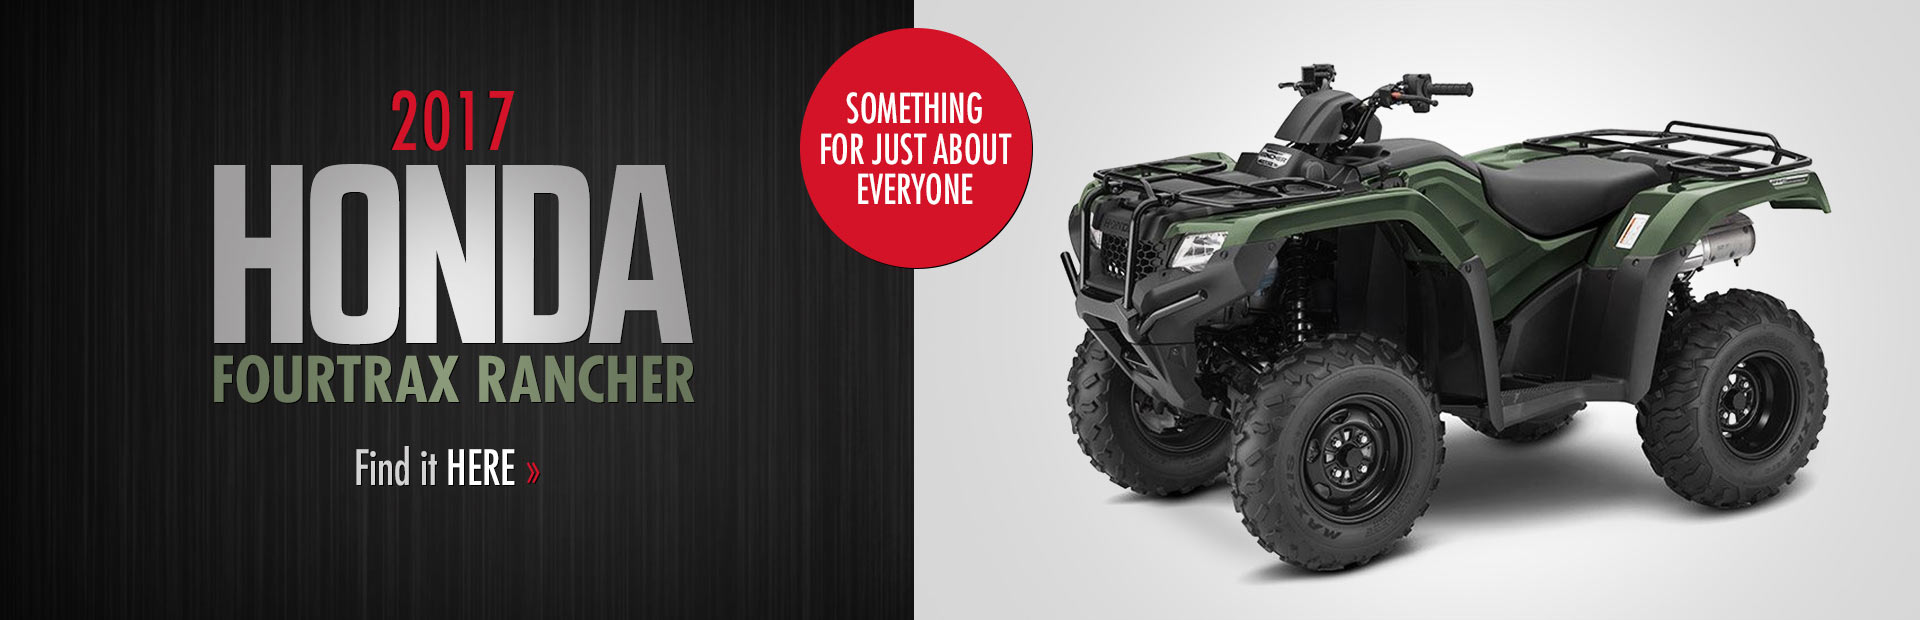 2017 Honda FourTrax Rancher ATV Click Here To View The Model